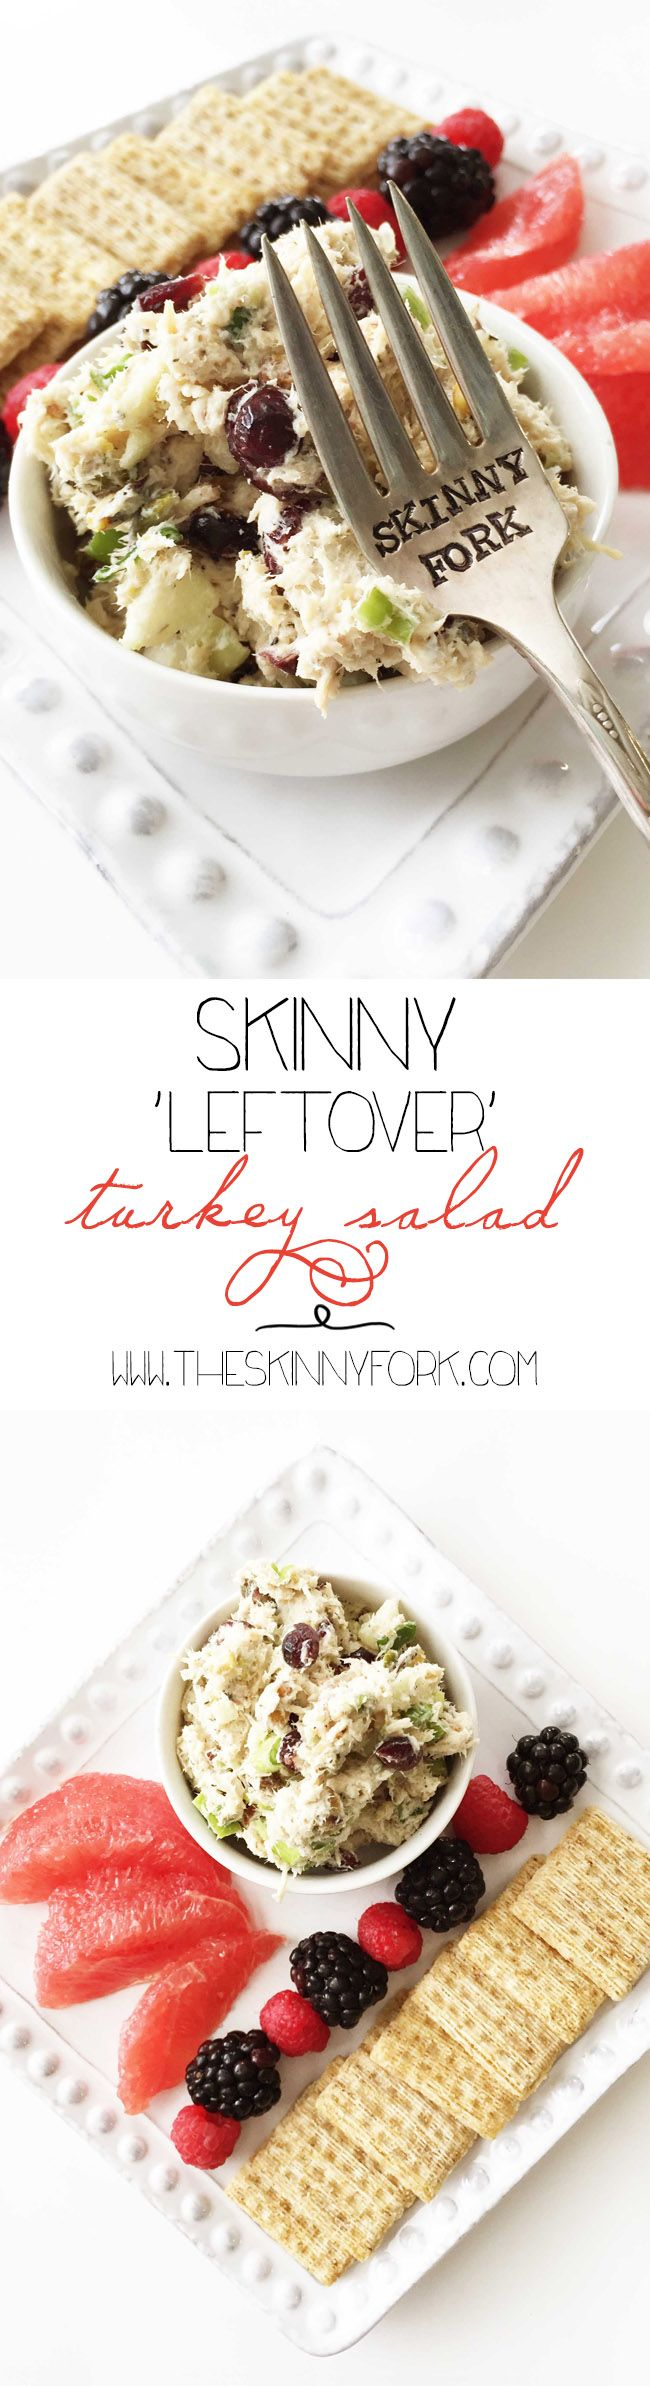 Skinny 'Leftover' Turkey Salad - A healthy turkey salad that's easy to whip up with those holiday leftovers! TheSkinnyFork.com